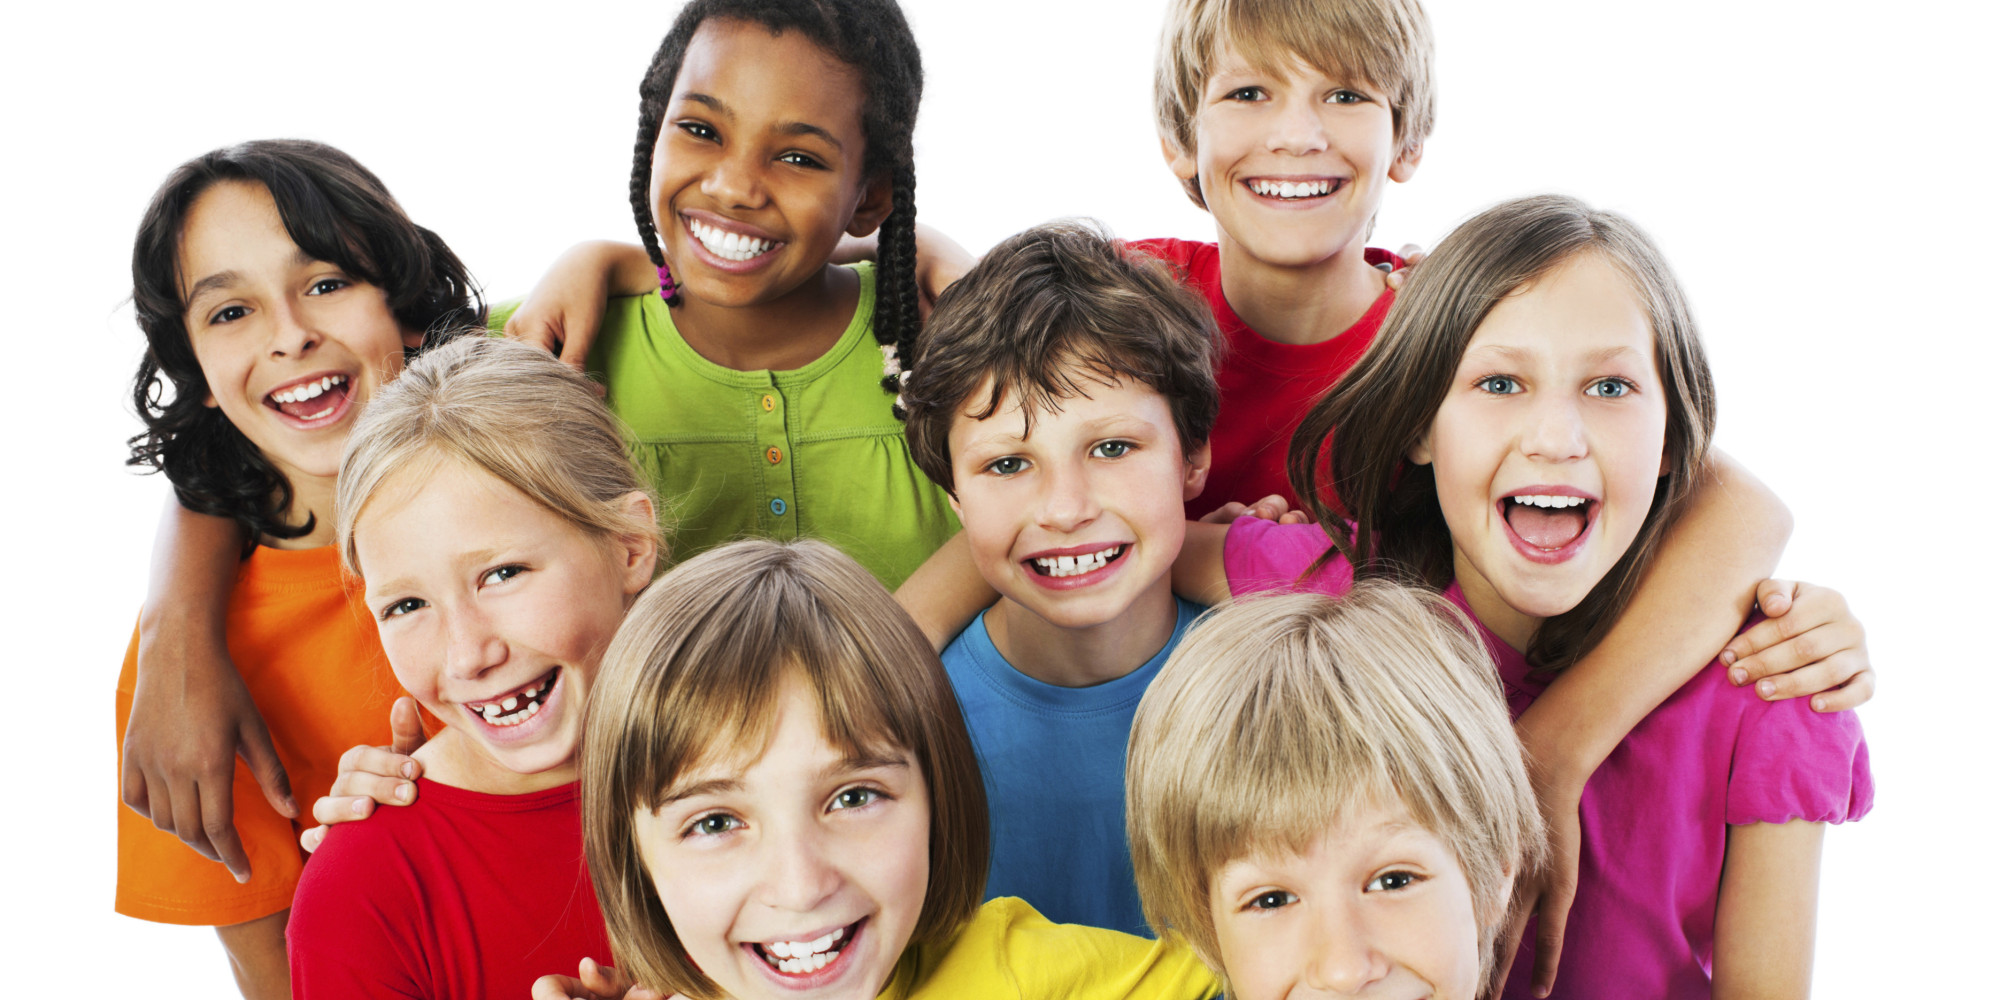 Image result for BUNCH OF SMILING KIDS